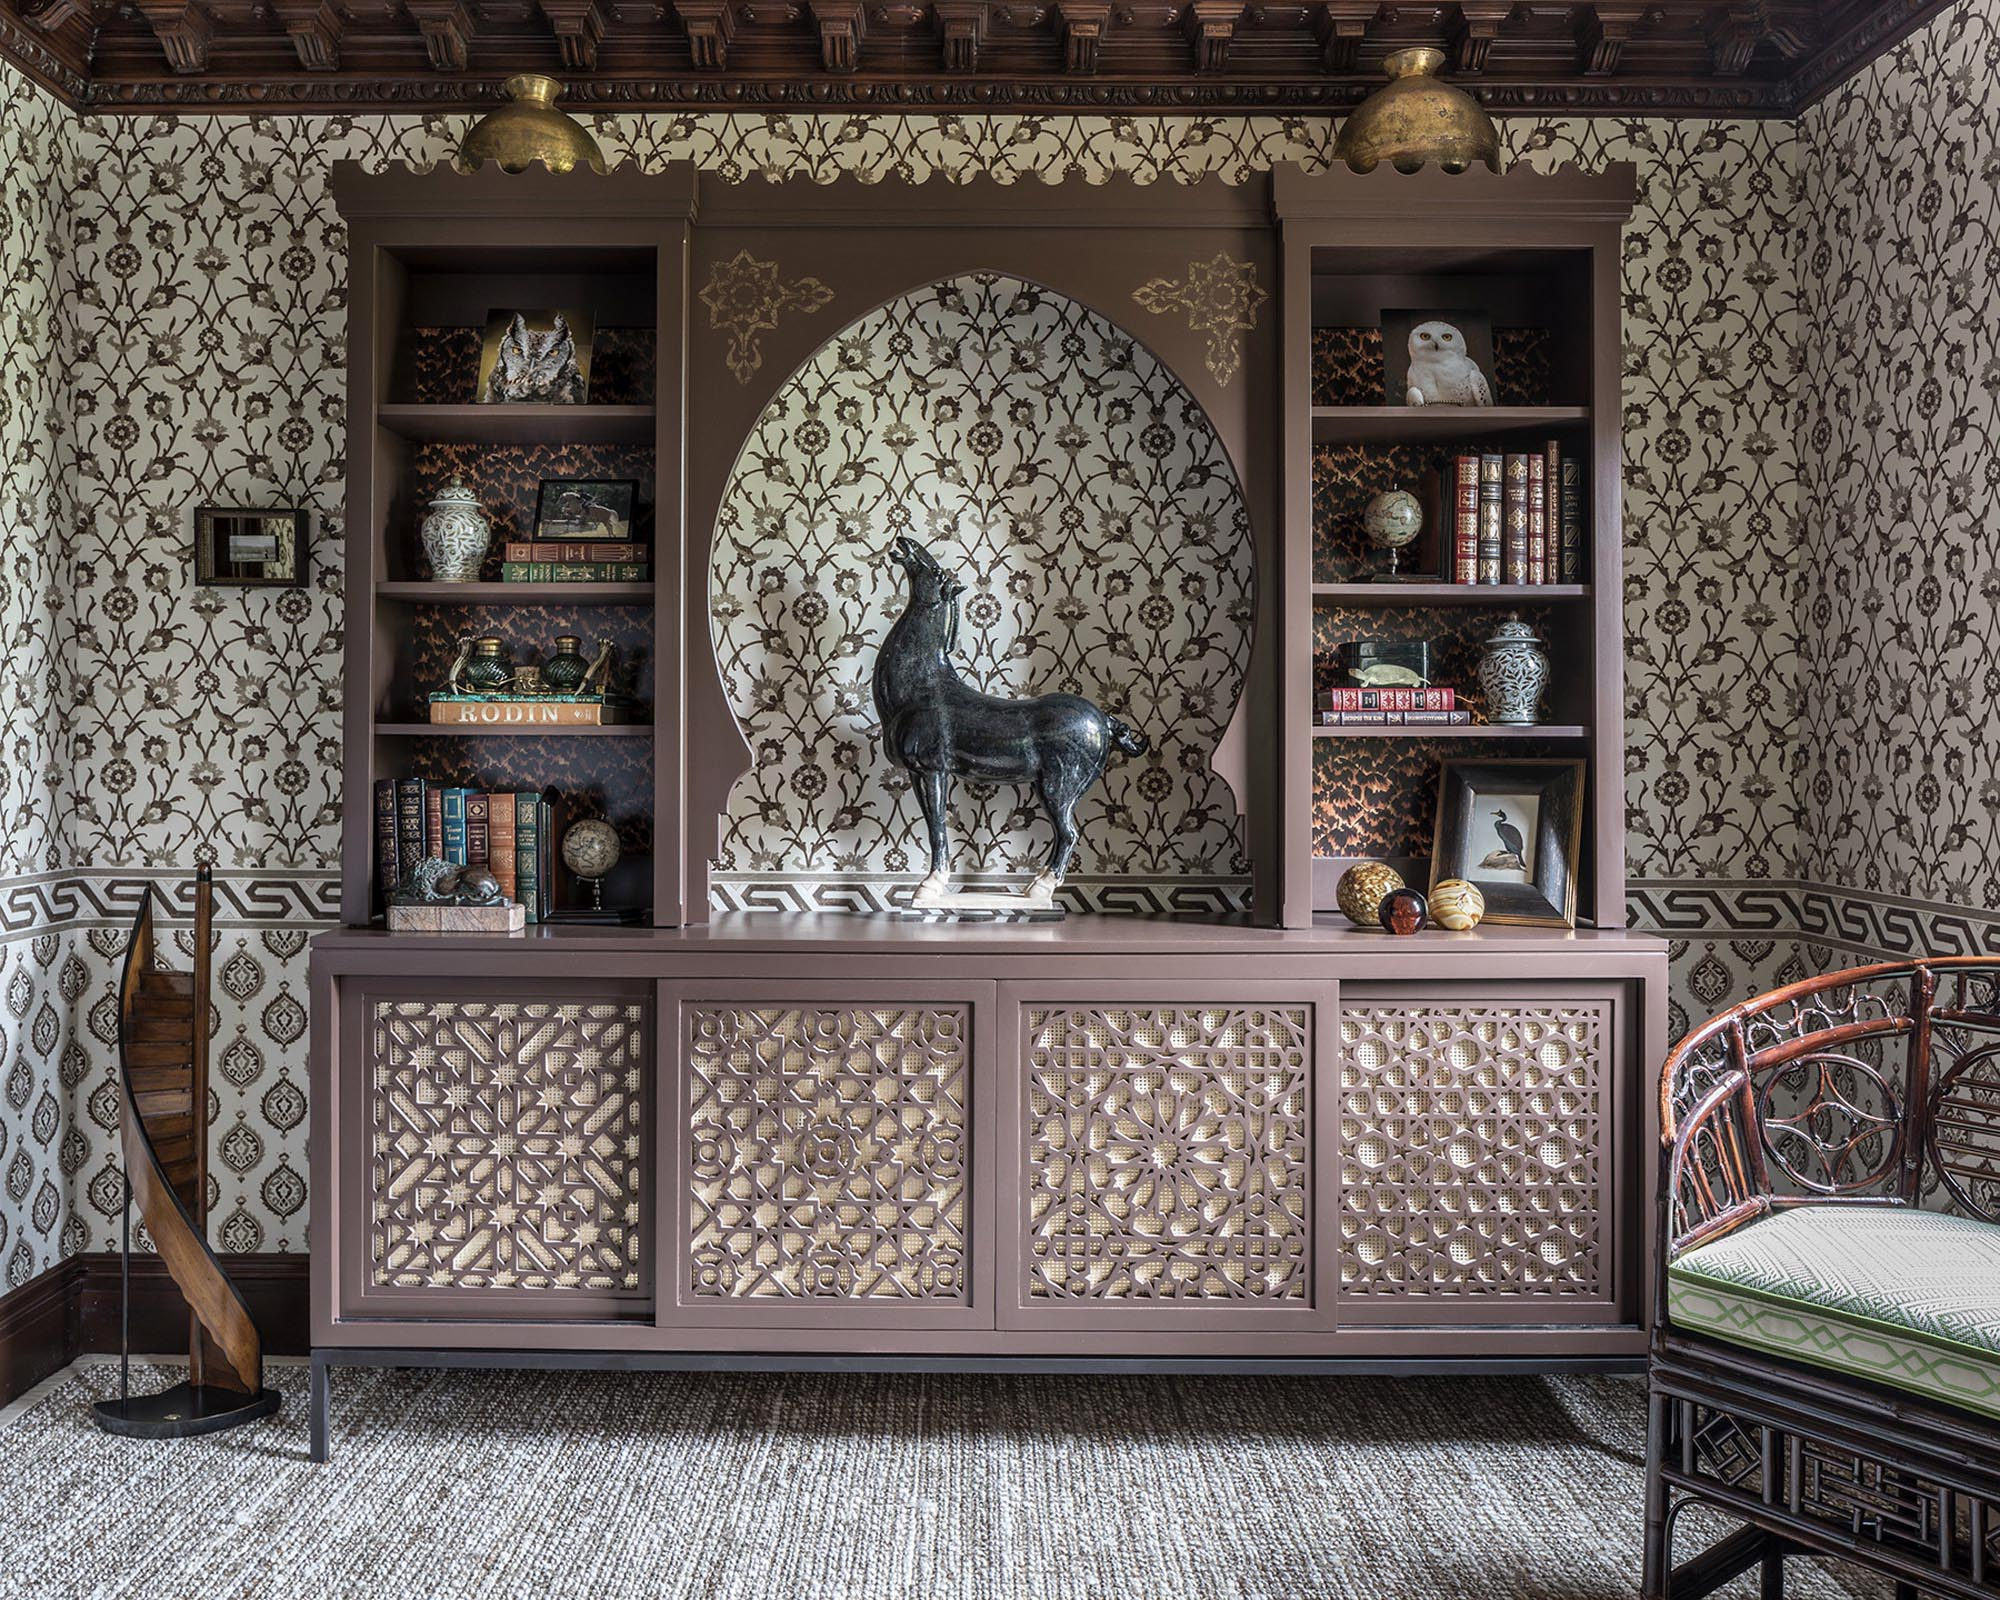 Spacious cabinet with stylish displays and books